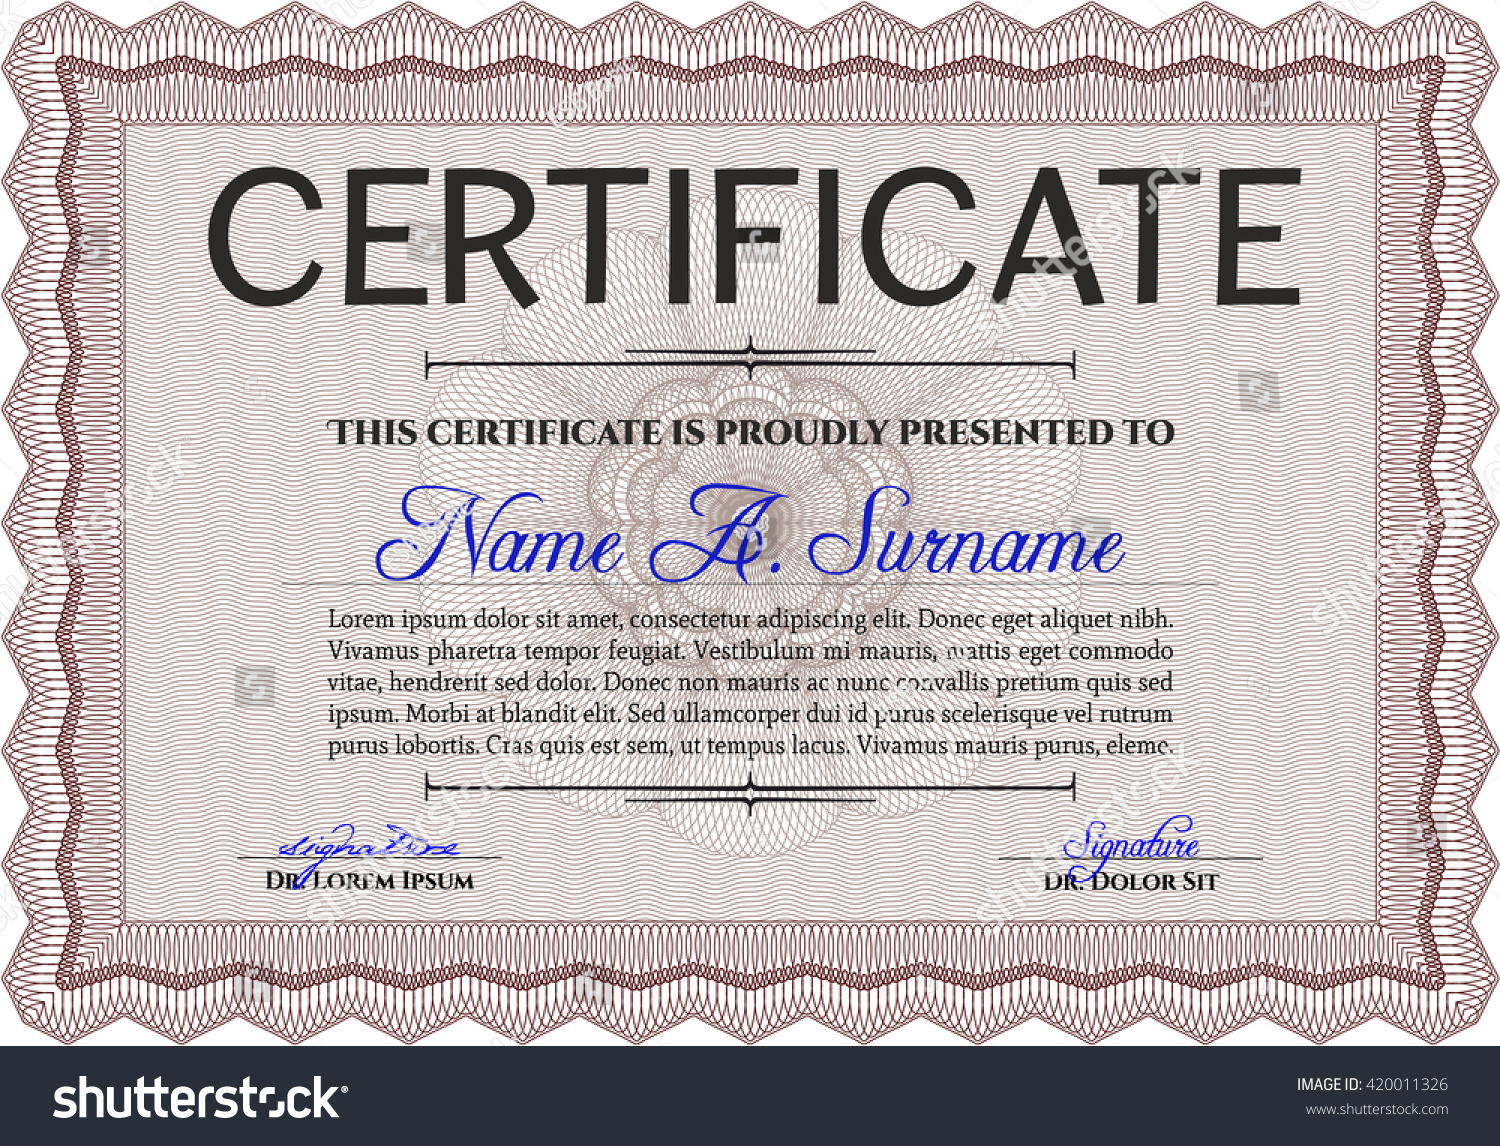 Red Certificate Template Detailed Printer Friendly Nice Design